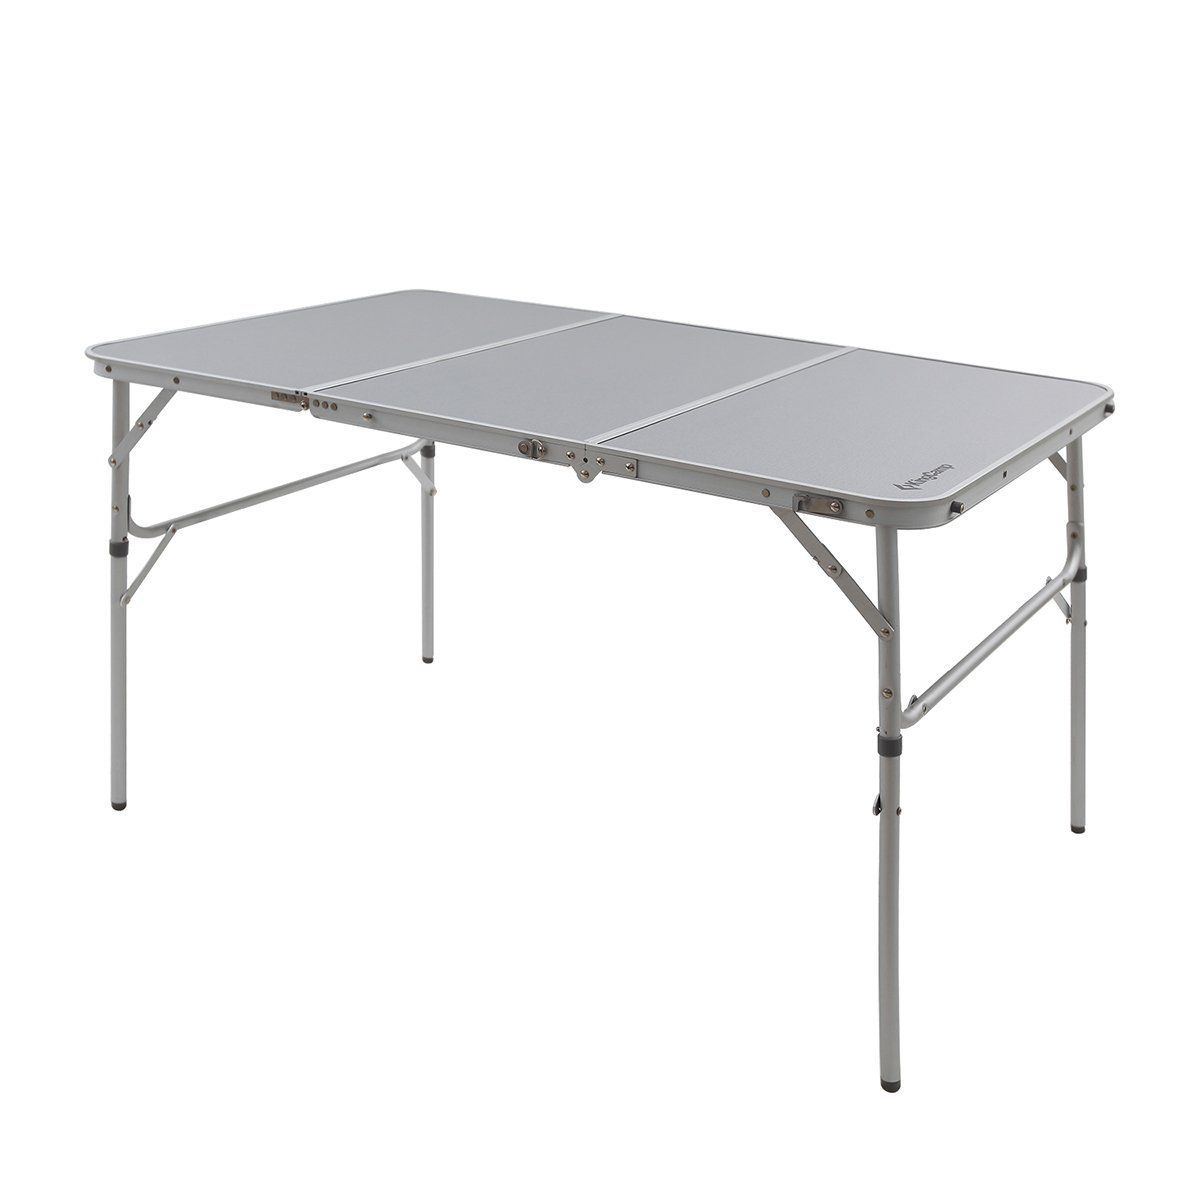 Kingcamp Lightweight Aluminum Tri Fold Camping Table You Can